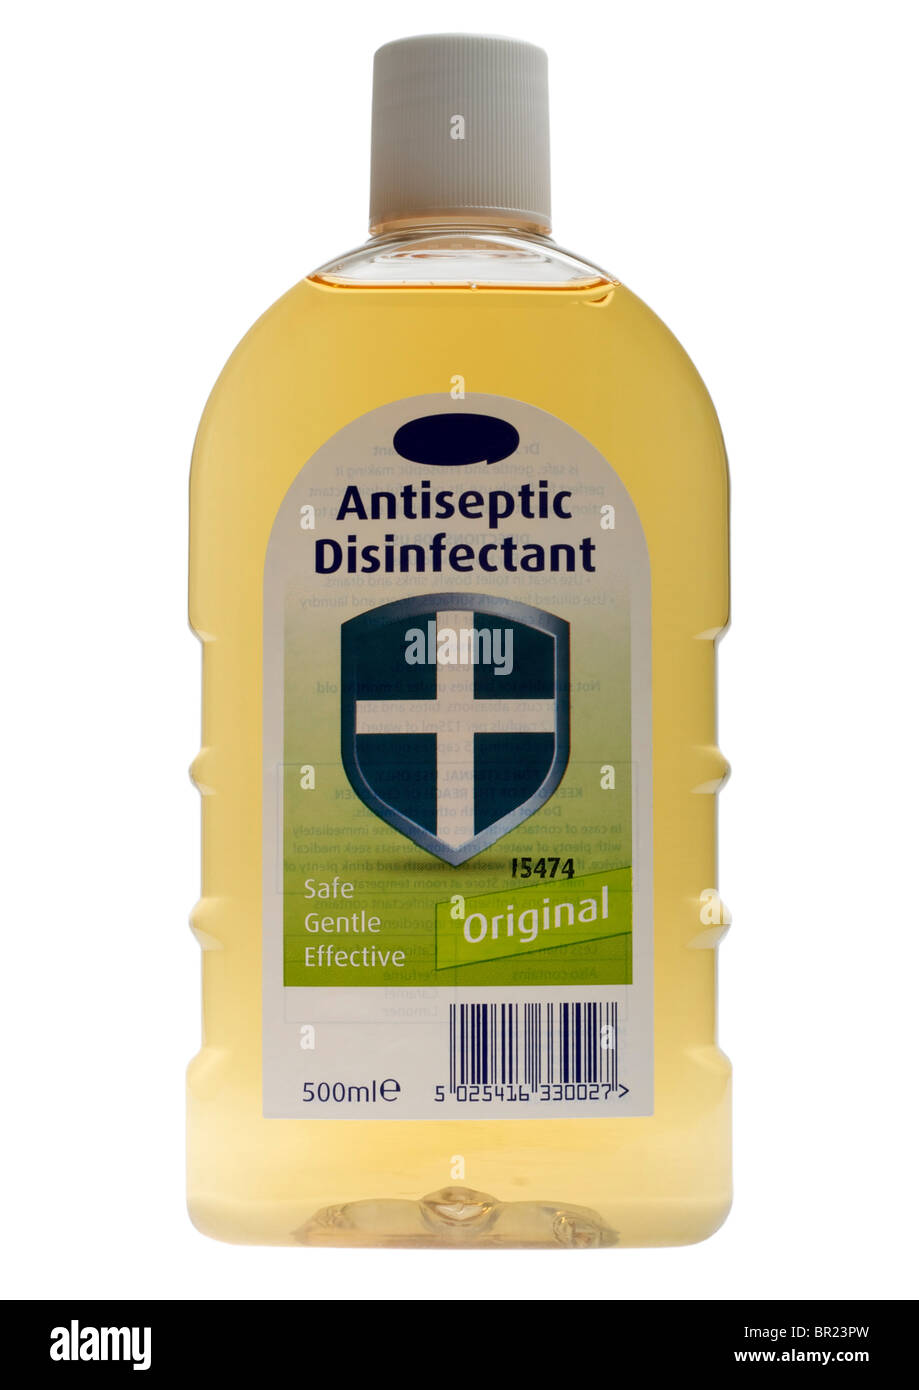 Bottle of antiseptic disinfectant on white background - Stock Image